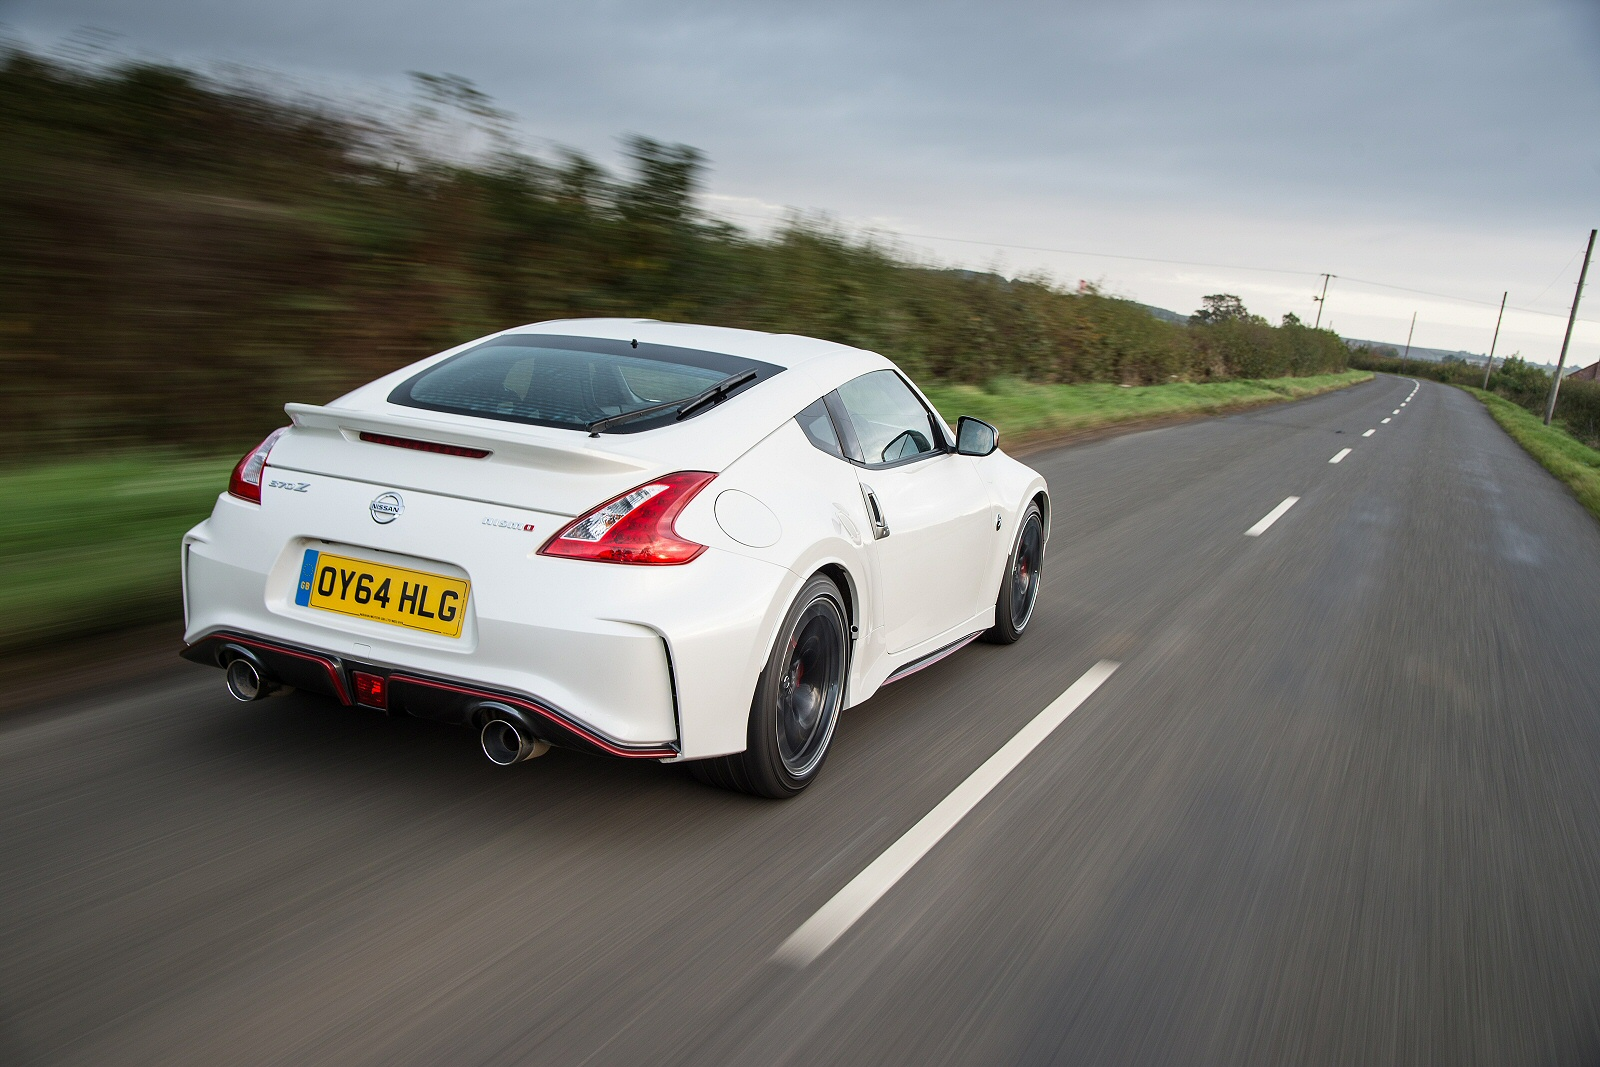 New Nissan 370z 3 7 V6 344 Nismo 3dr Petrol Coupe For